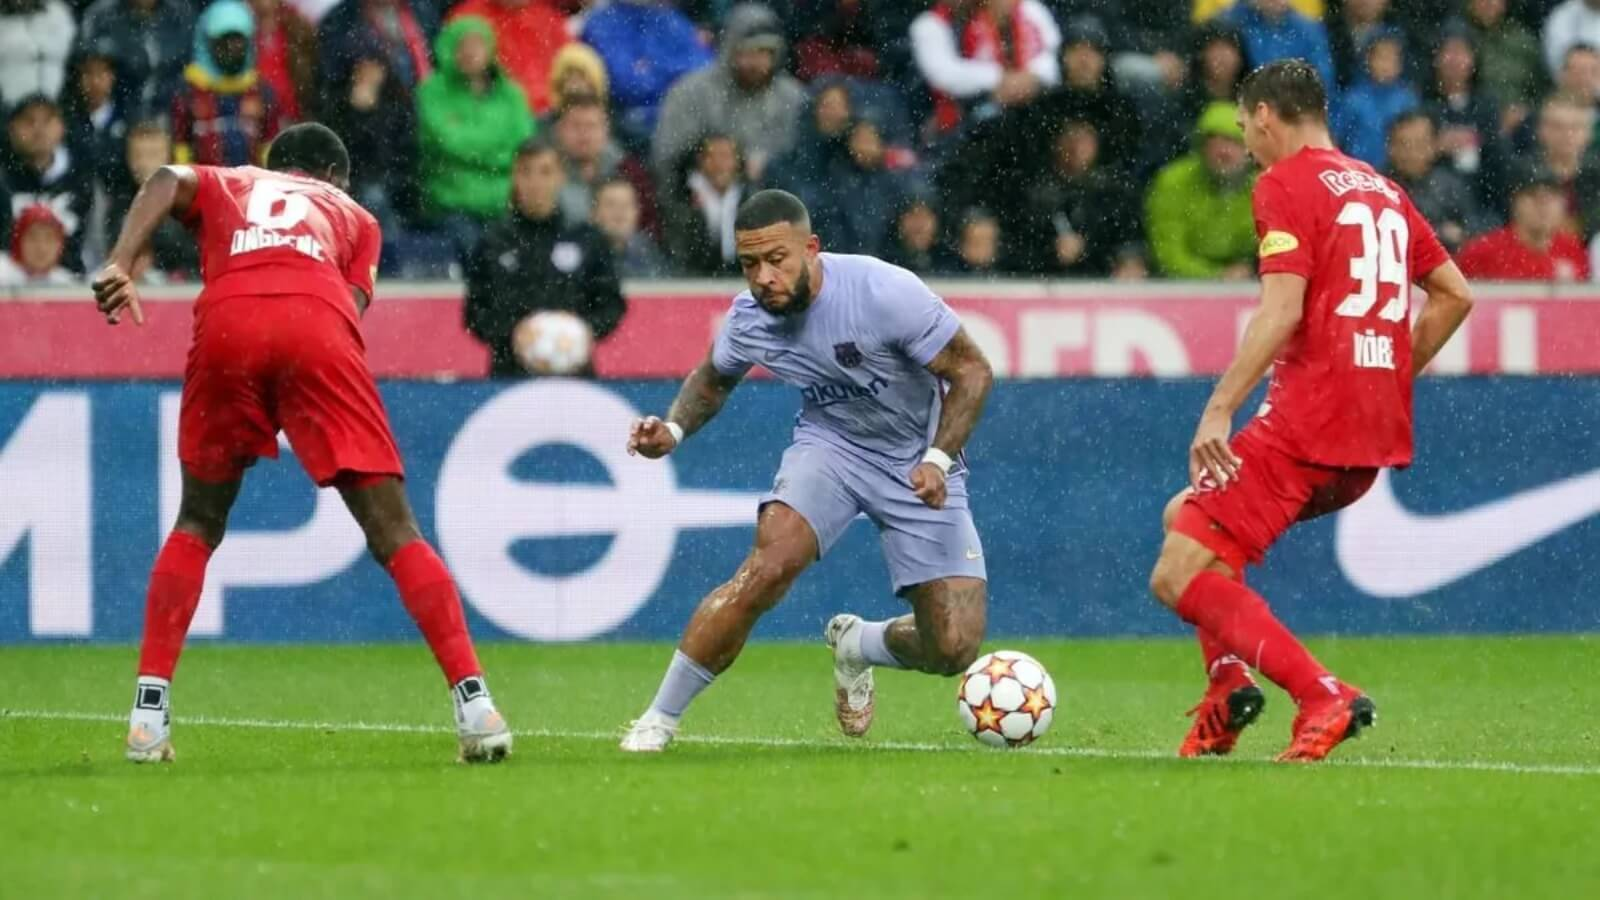 Barcelona lost first match of the season to Salzburg